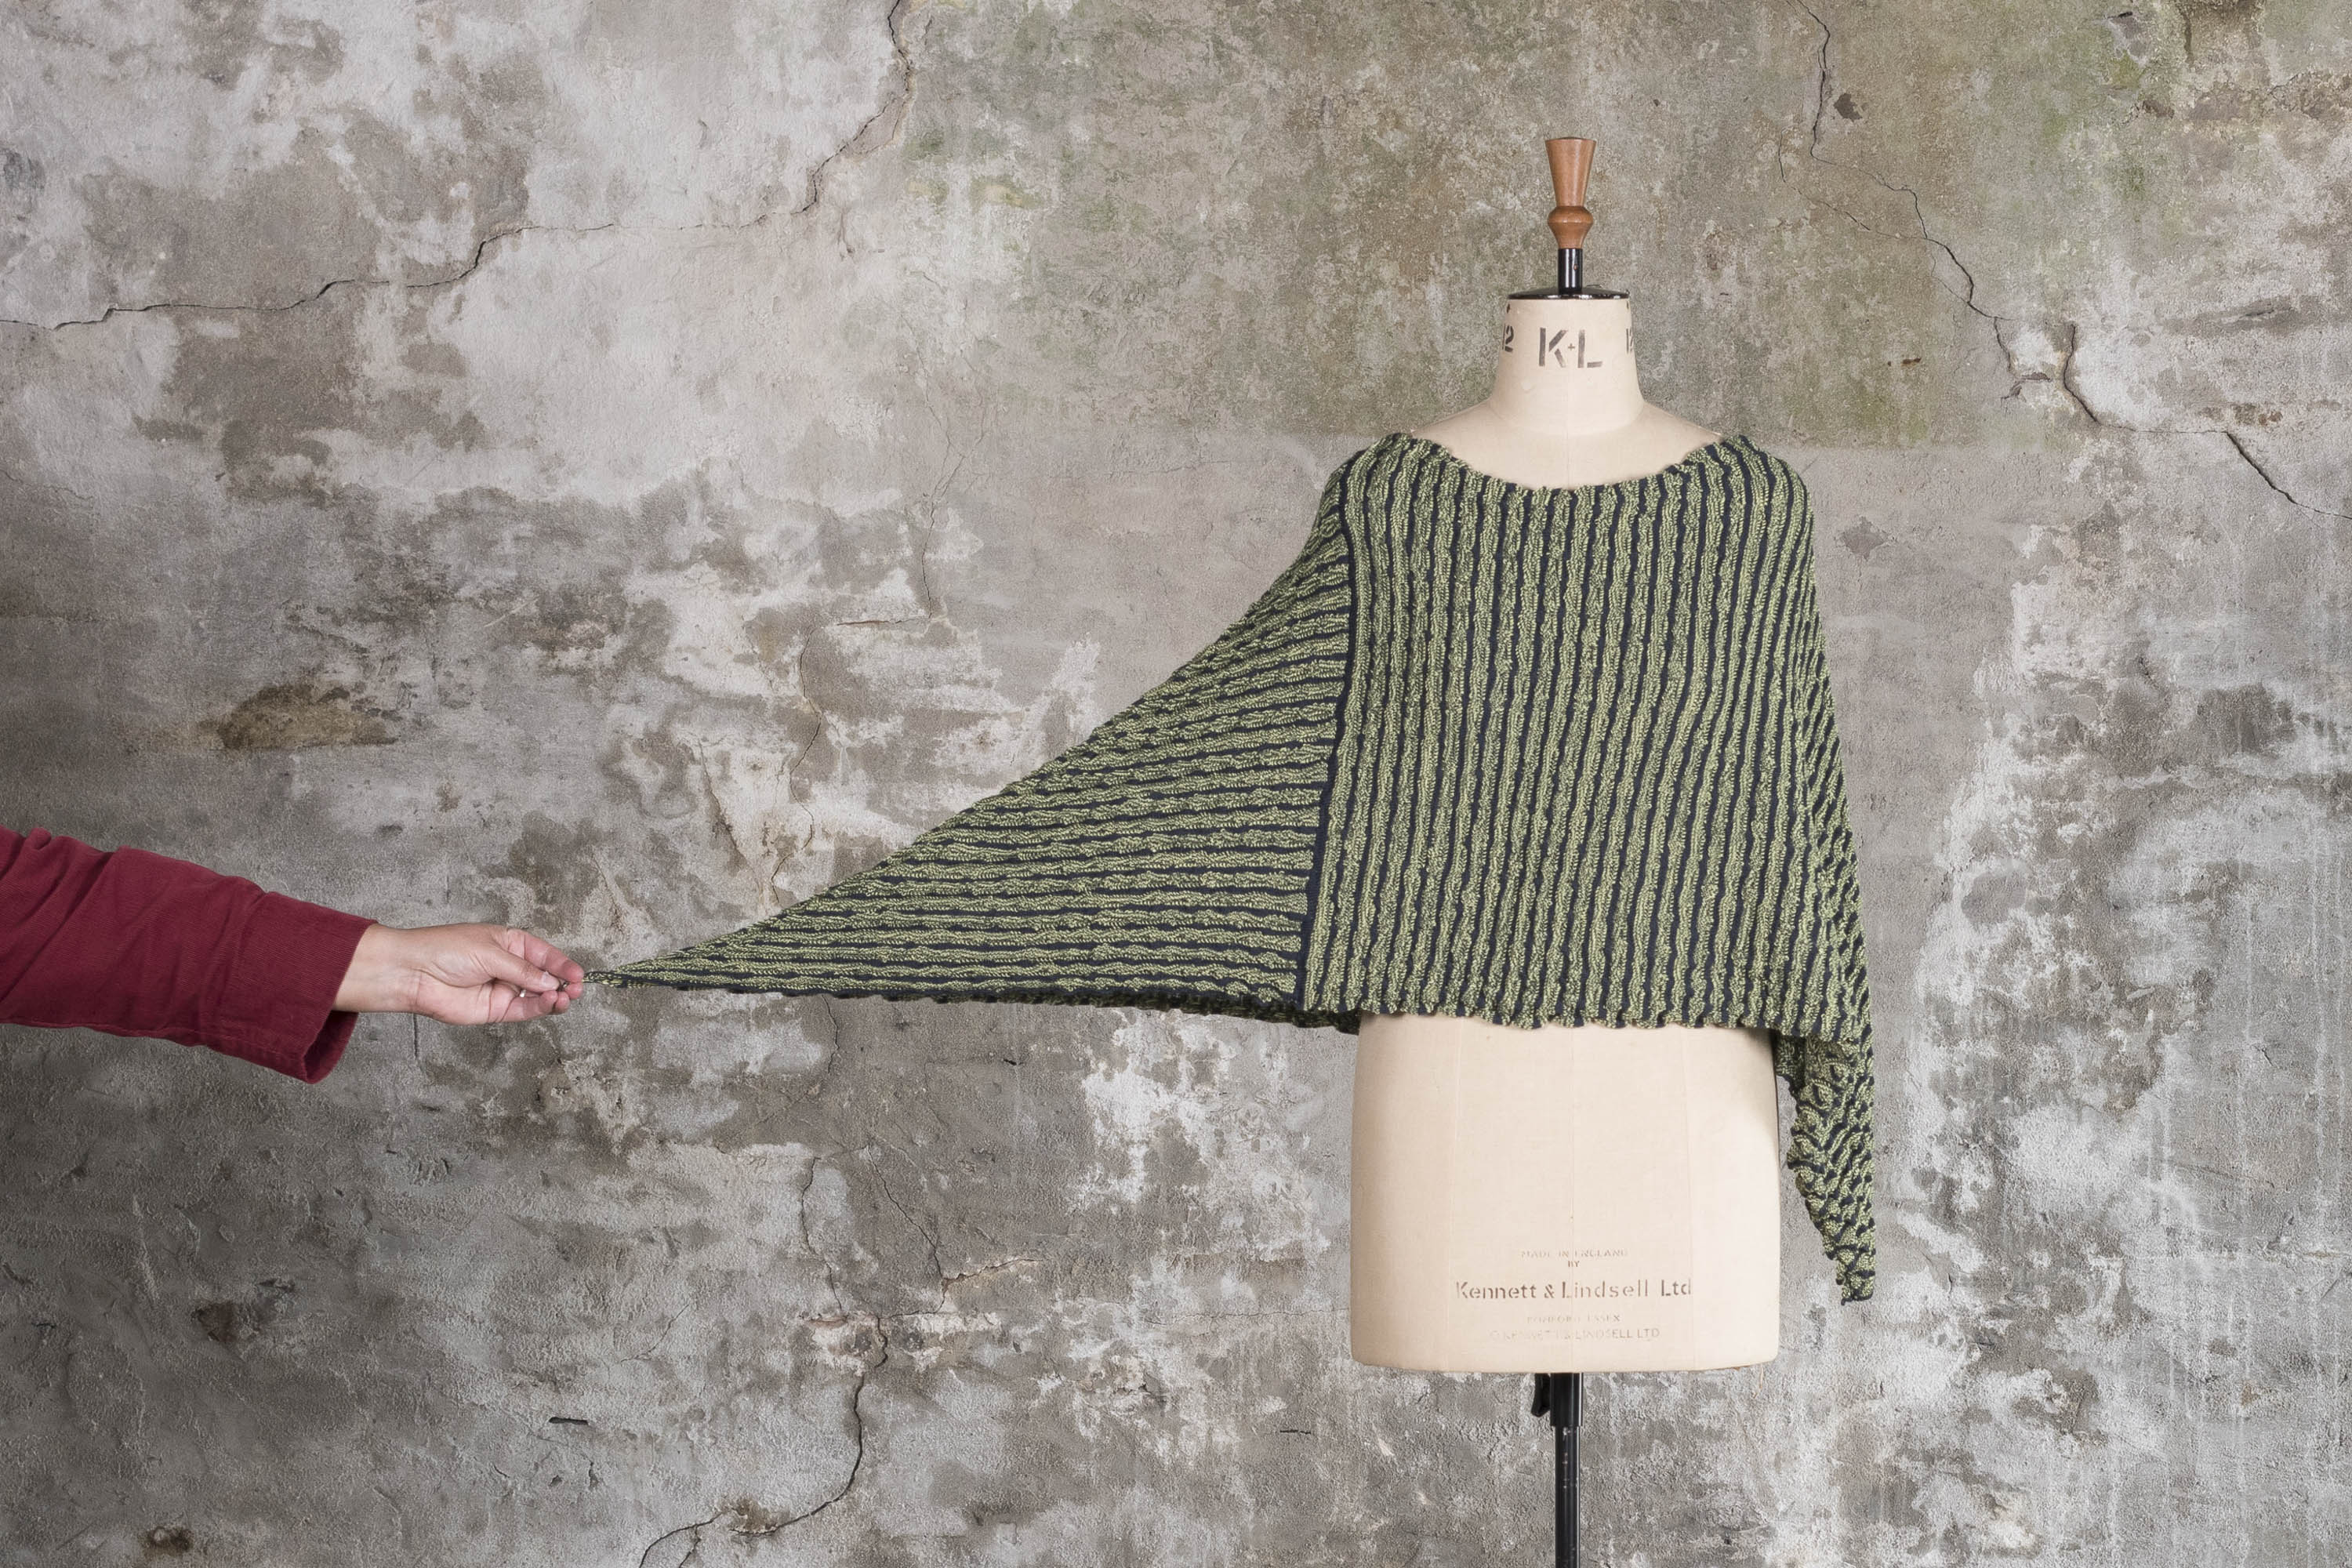 Nielanell Rigg cape - a knitted Shetland, contemporary knitwear